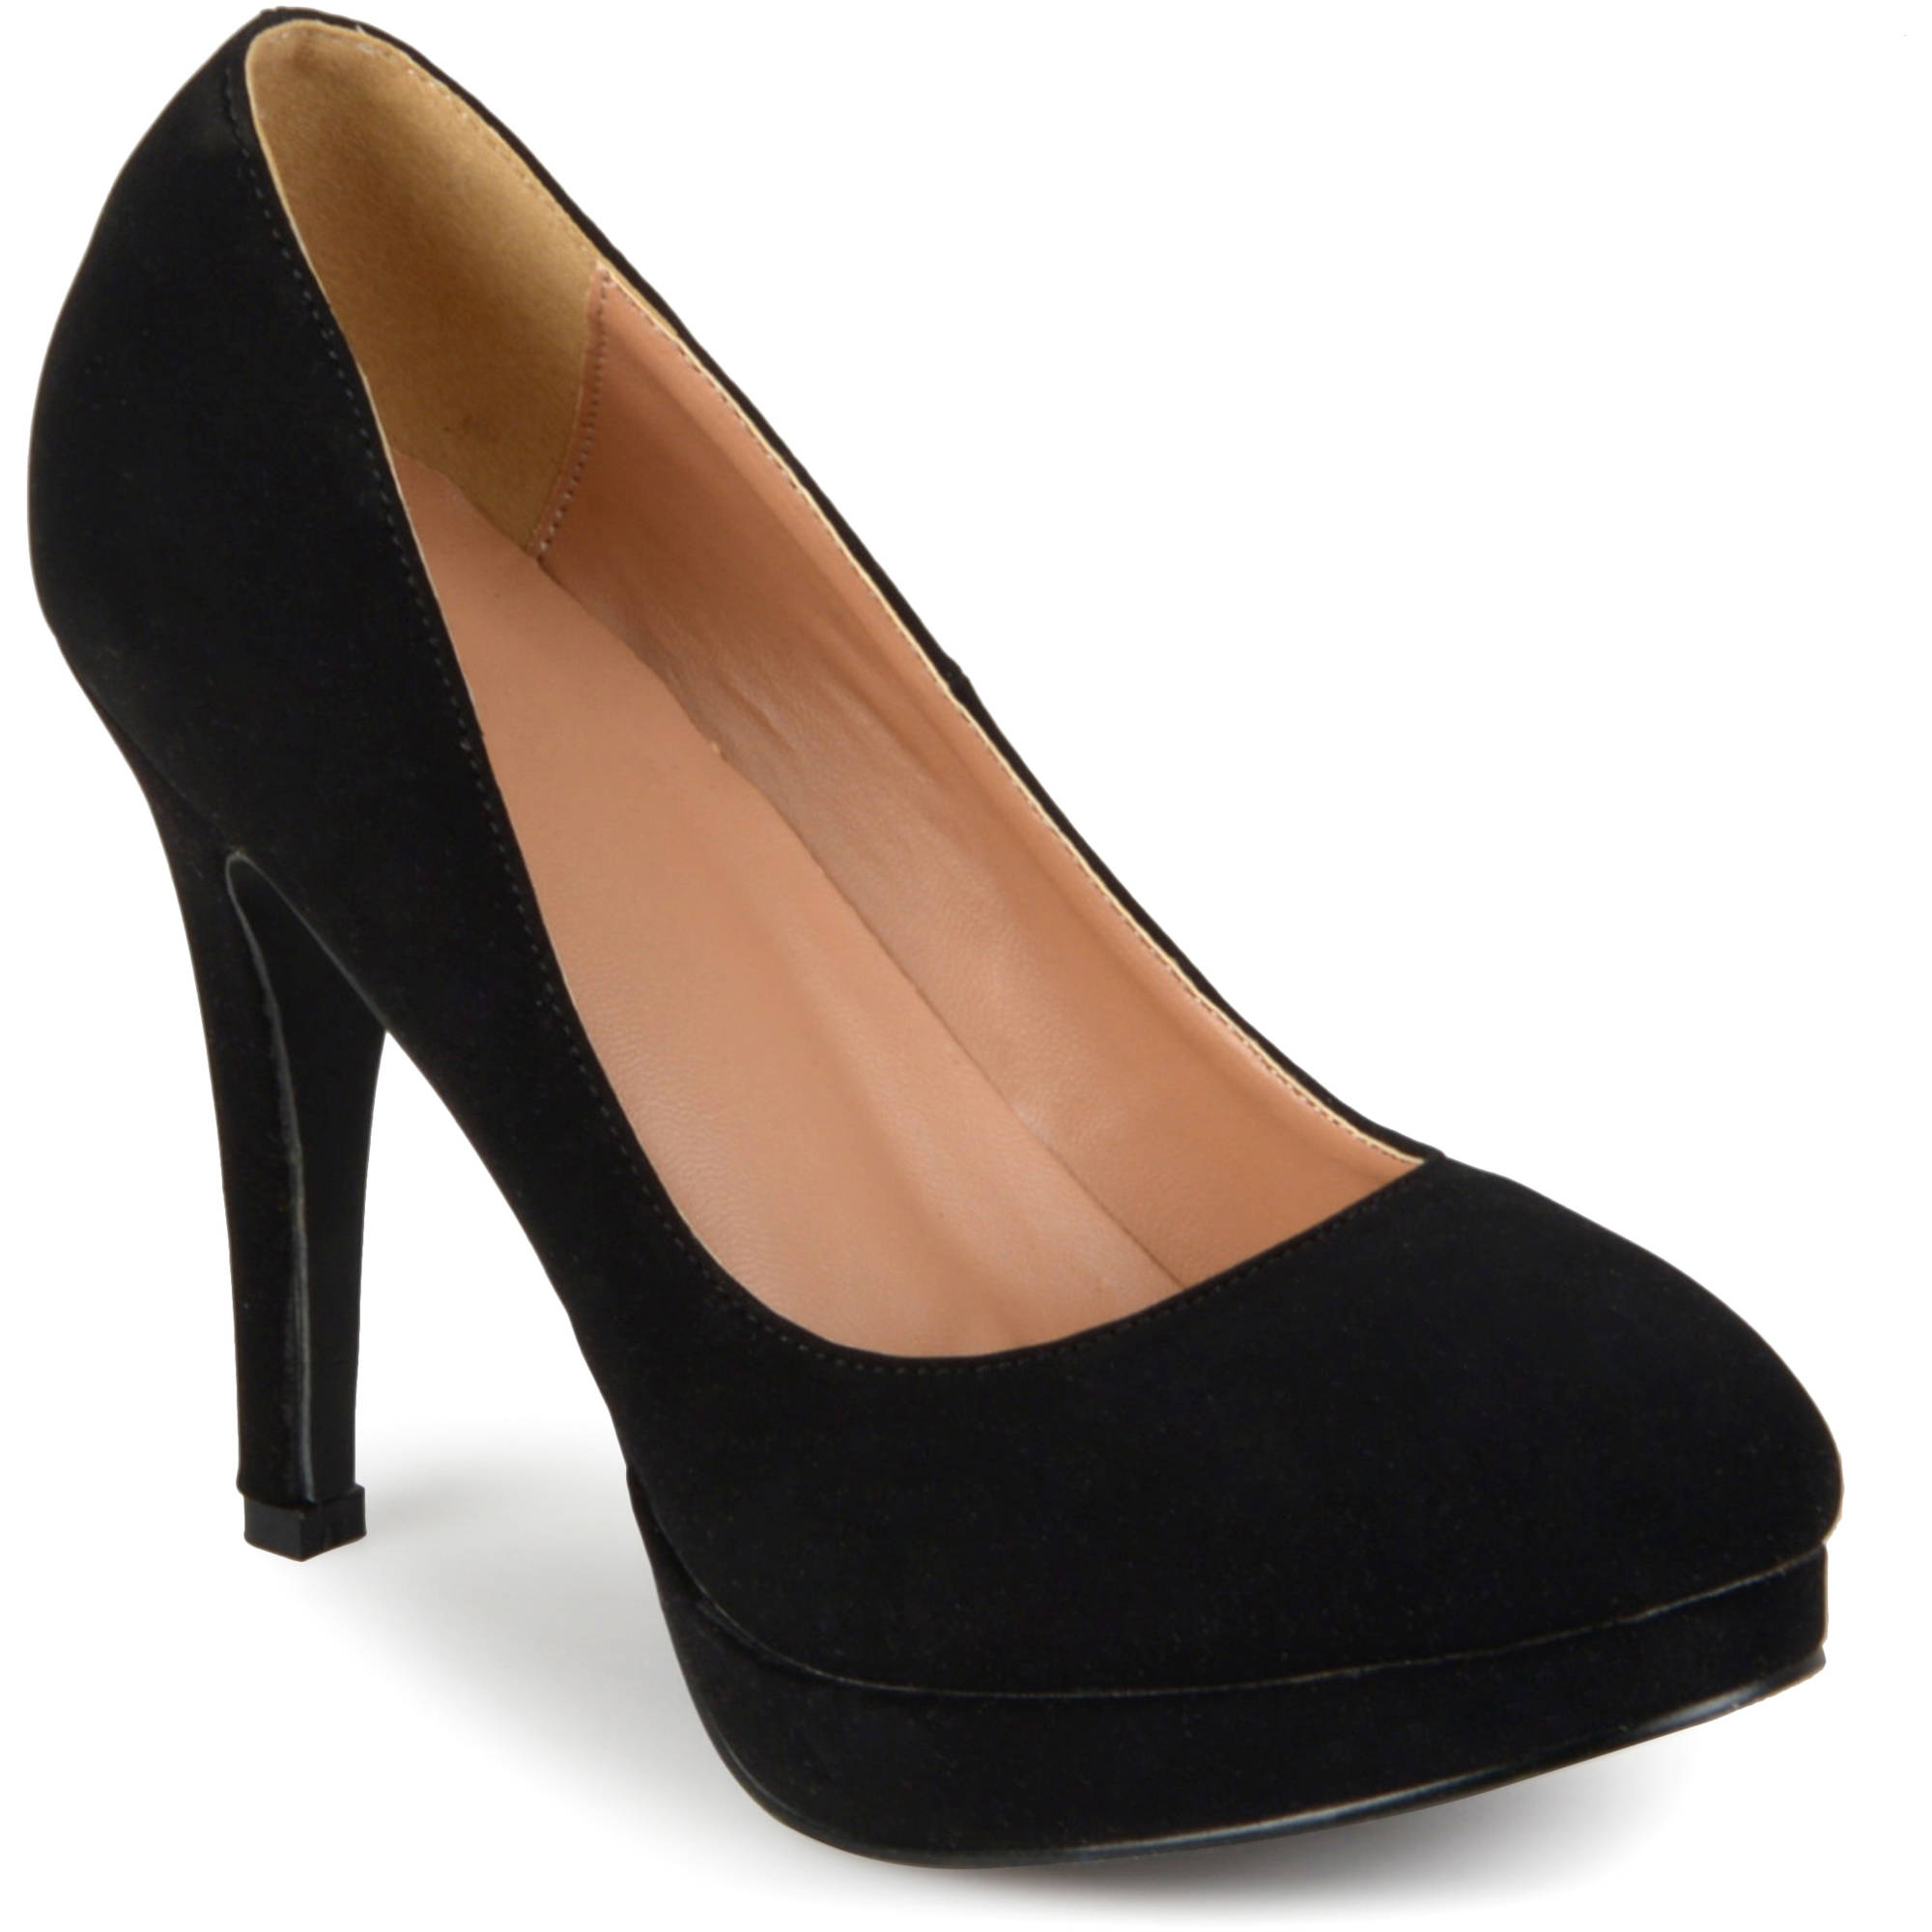 Brinley Co. Womens Round Toe Platform Pumps